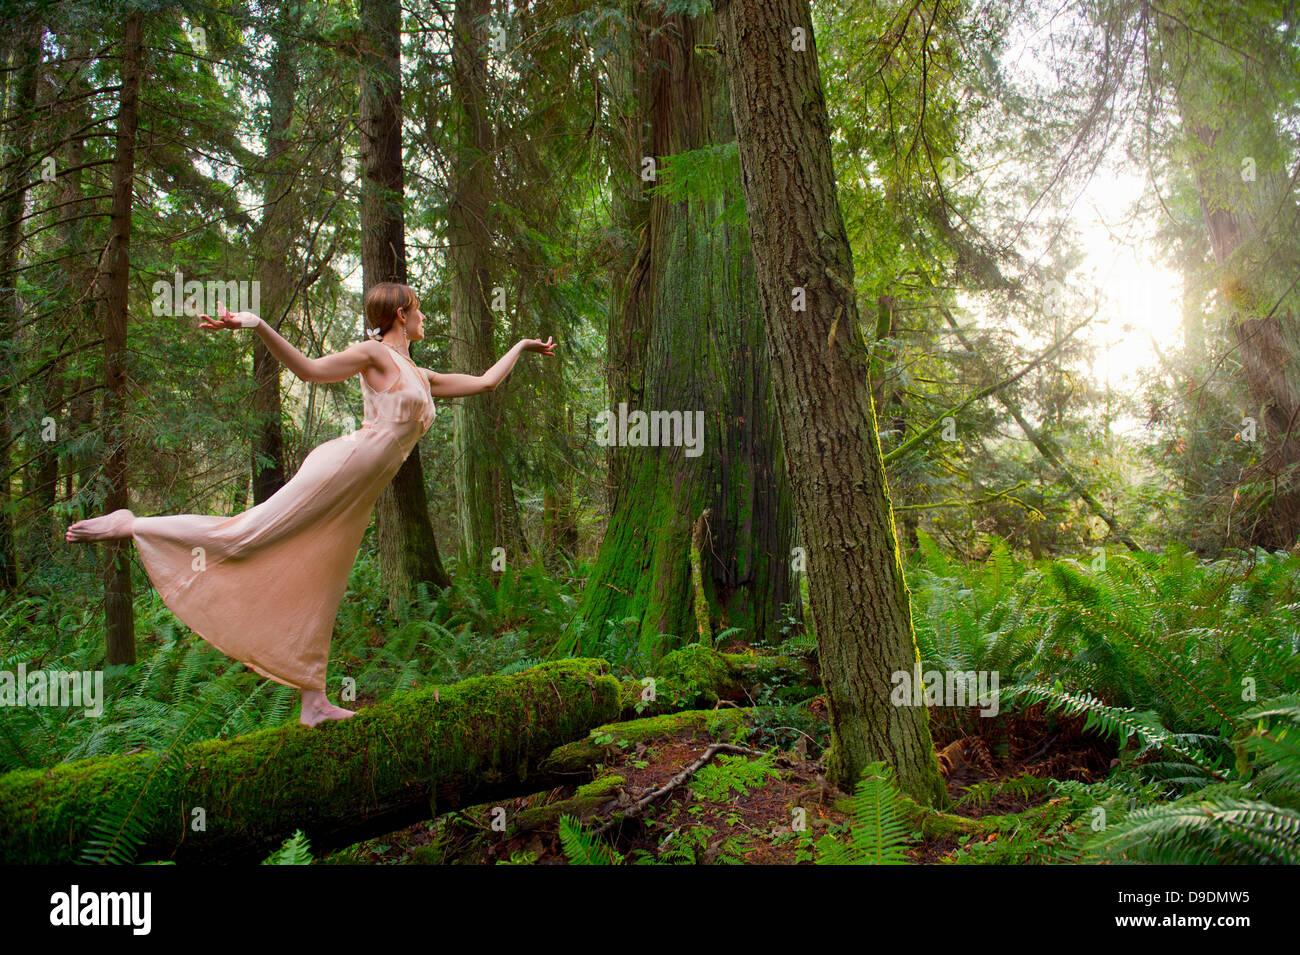 Mature woman standing on log in forest Stock Photo